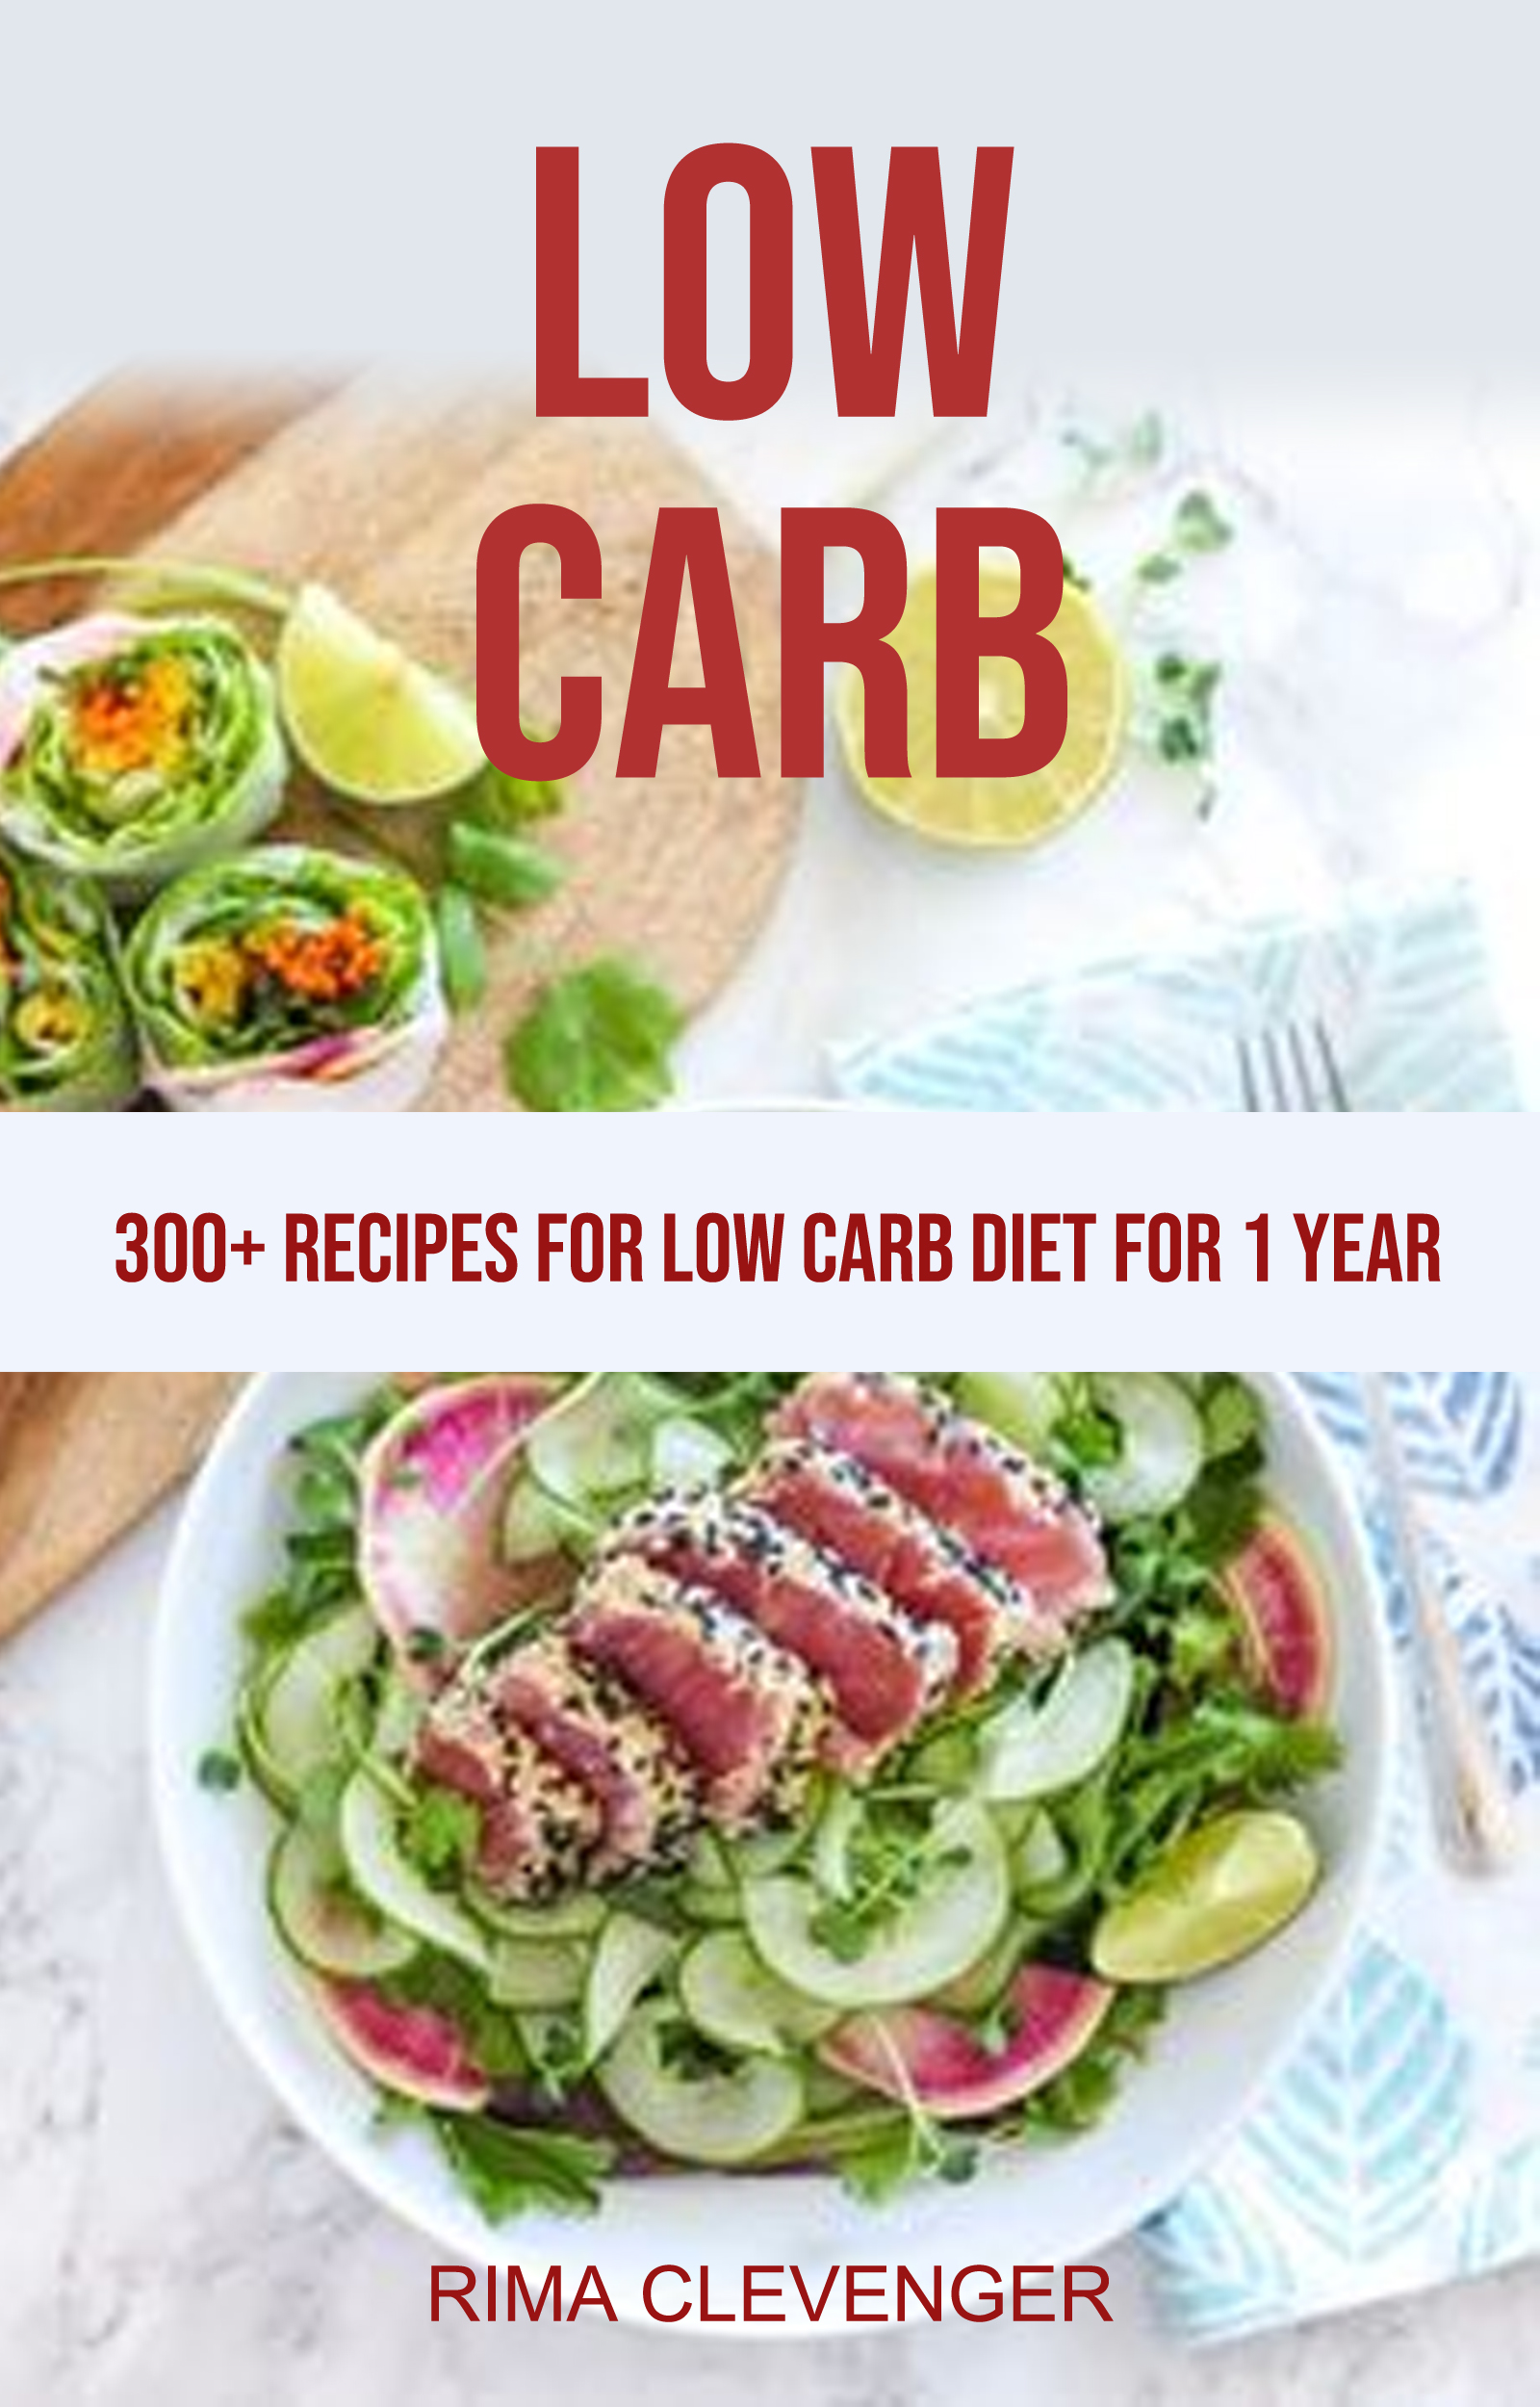 Low carb: 300+ recipes for low carb diet for 1 year